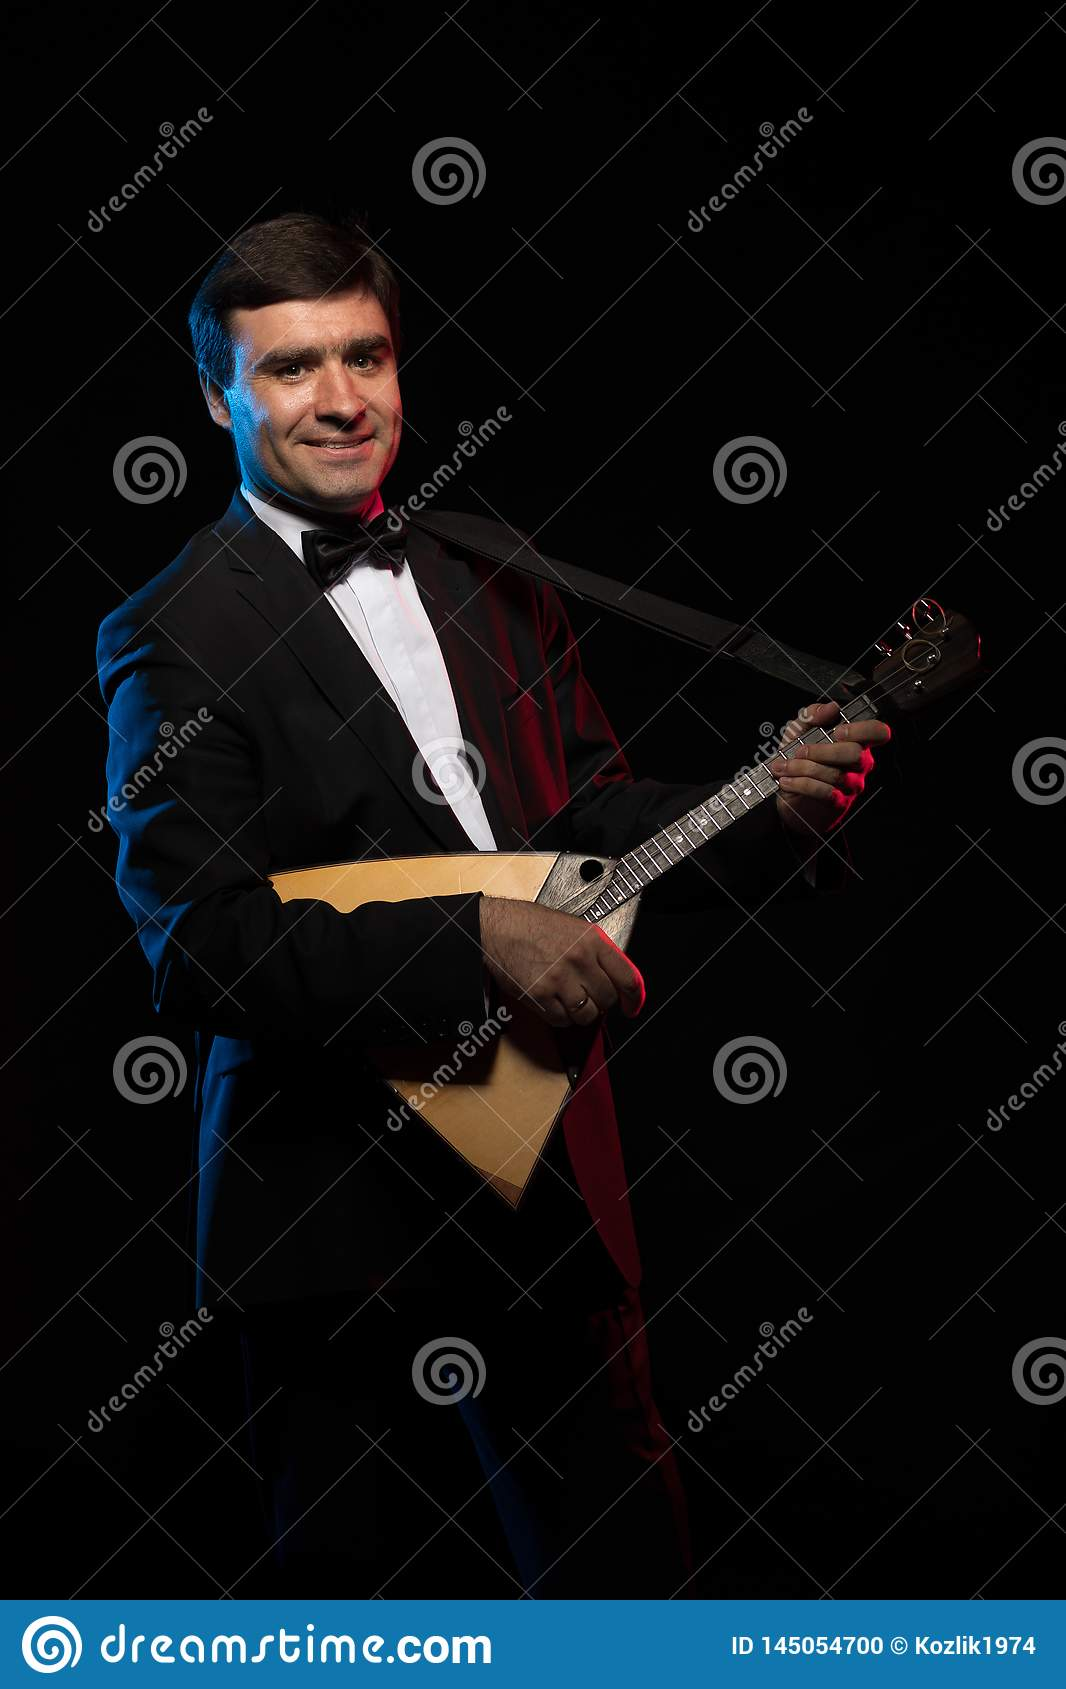 Artist musician, a dark-haired man in a black suit and a bow tie, plays a balalaika